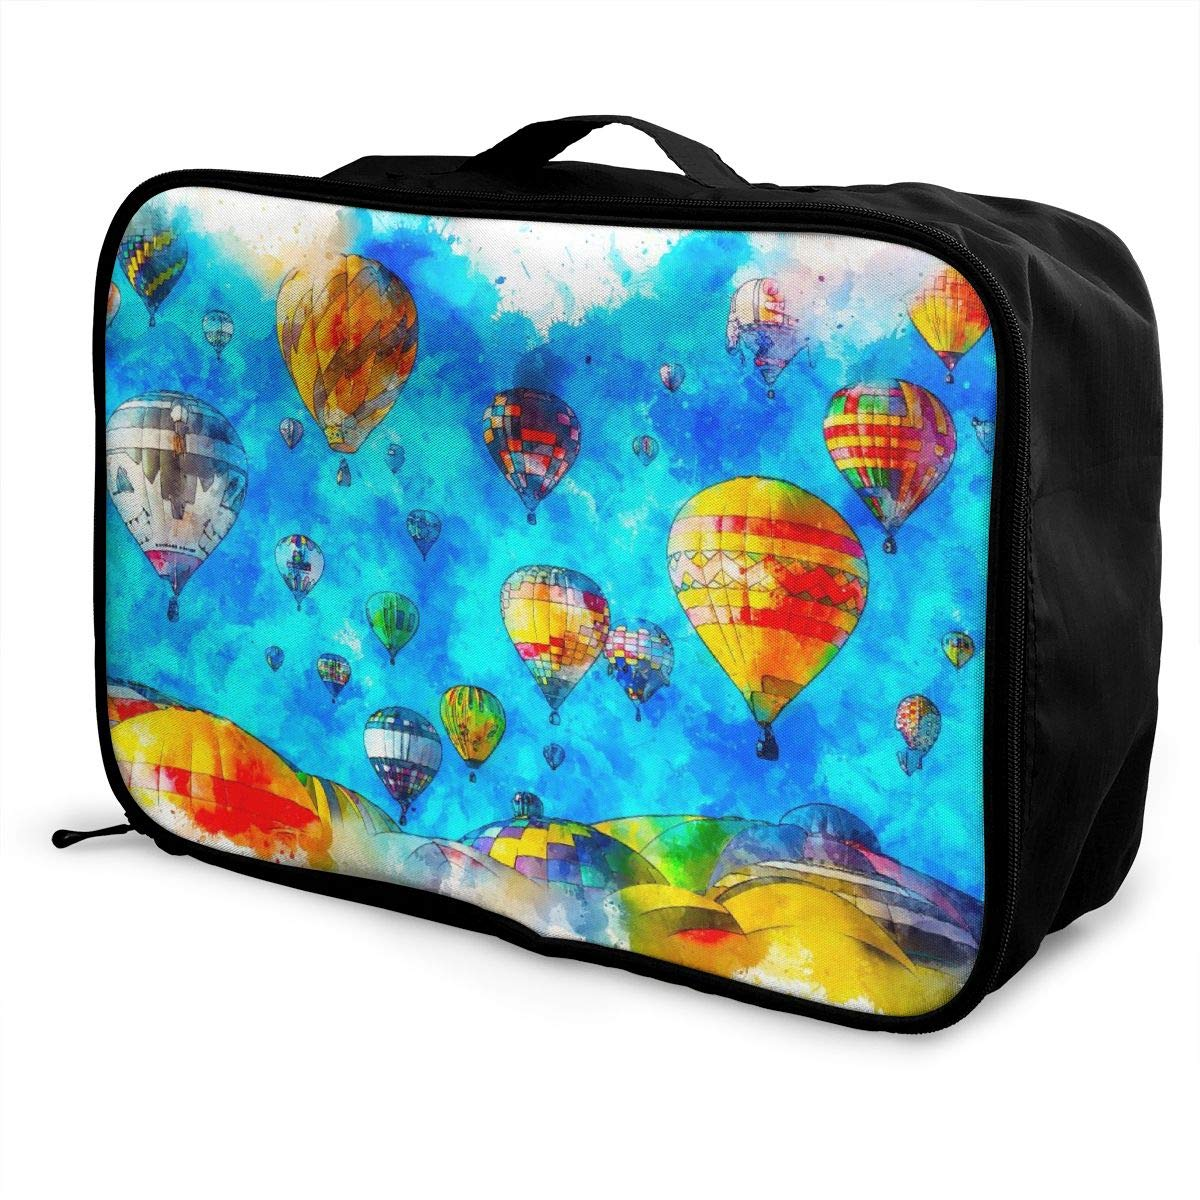 Hot Air Balloon Sky Art Watercolor Travel Lightweight Waterproof Foldable Storage Carry Luggage Large Capacity Portable Luggage Bag Duffel Bag